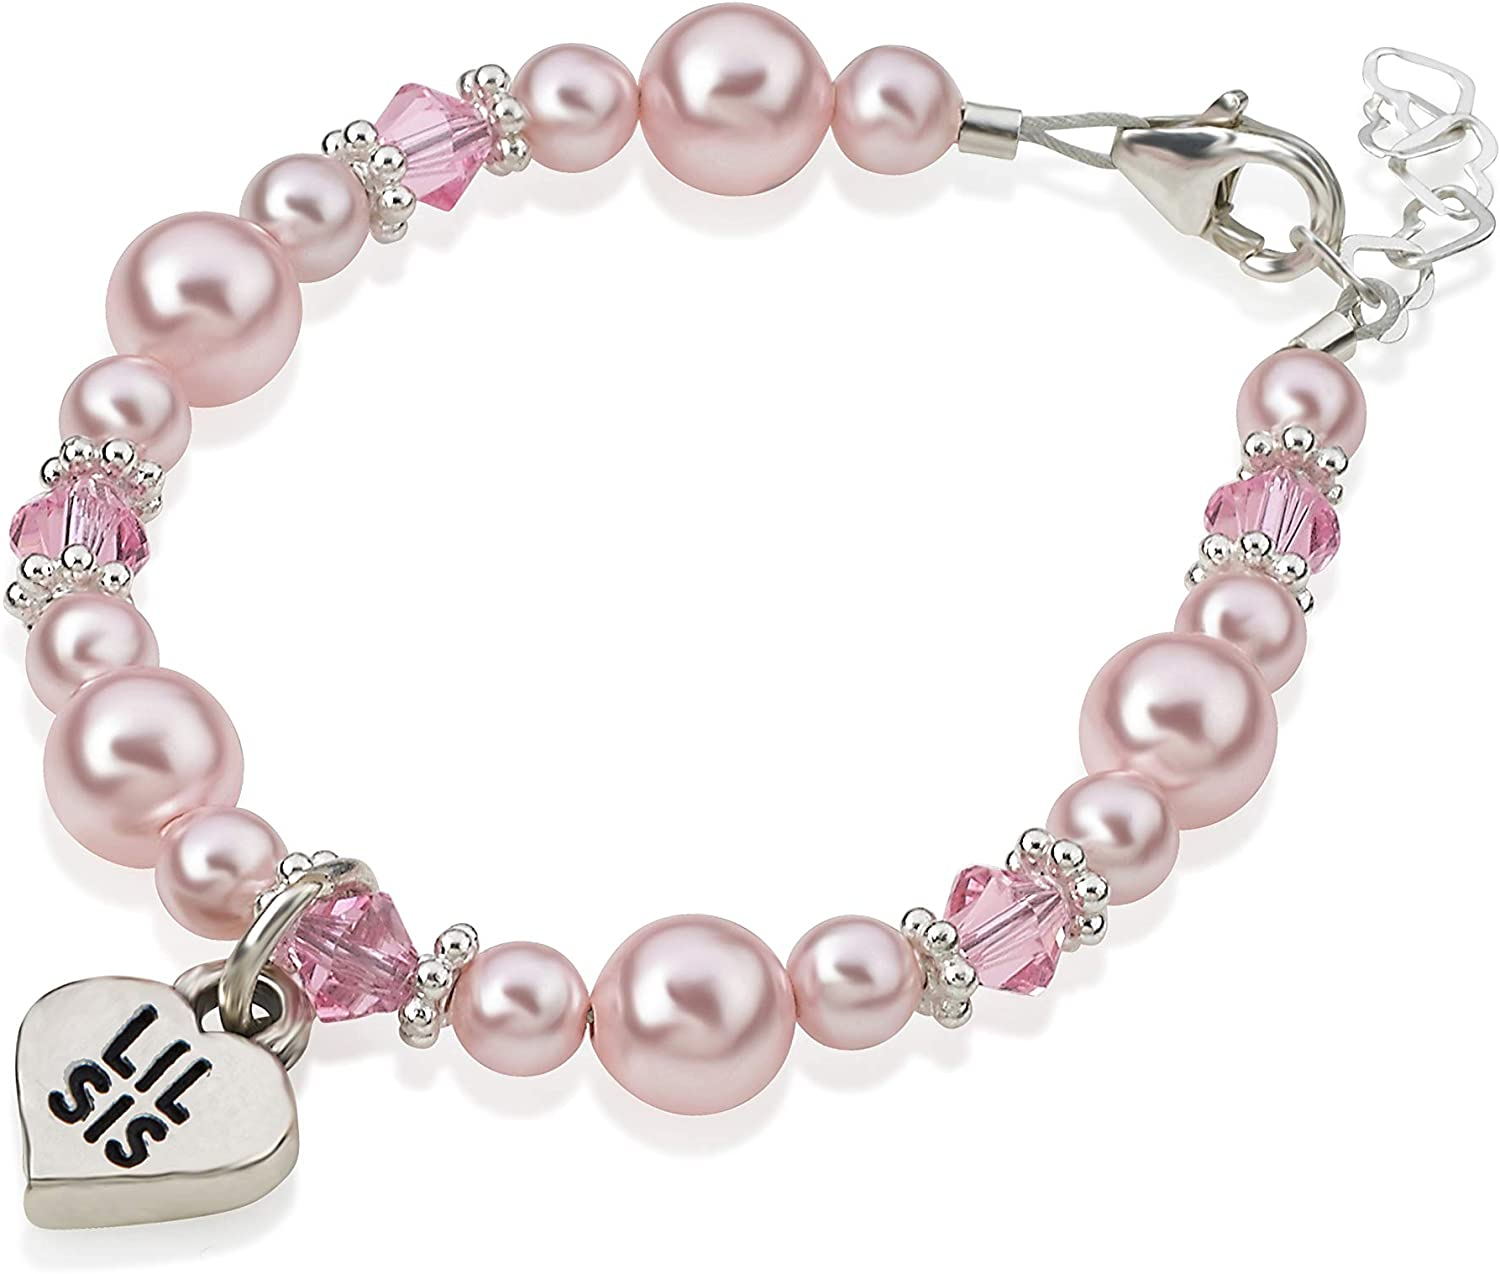 Mauve Crystal Pearl Charm Bead European Style made with Swarovski Elements